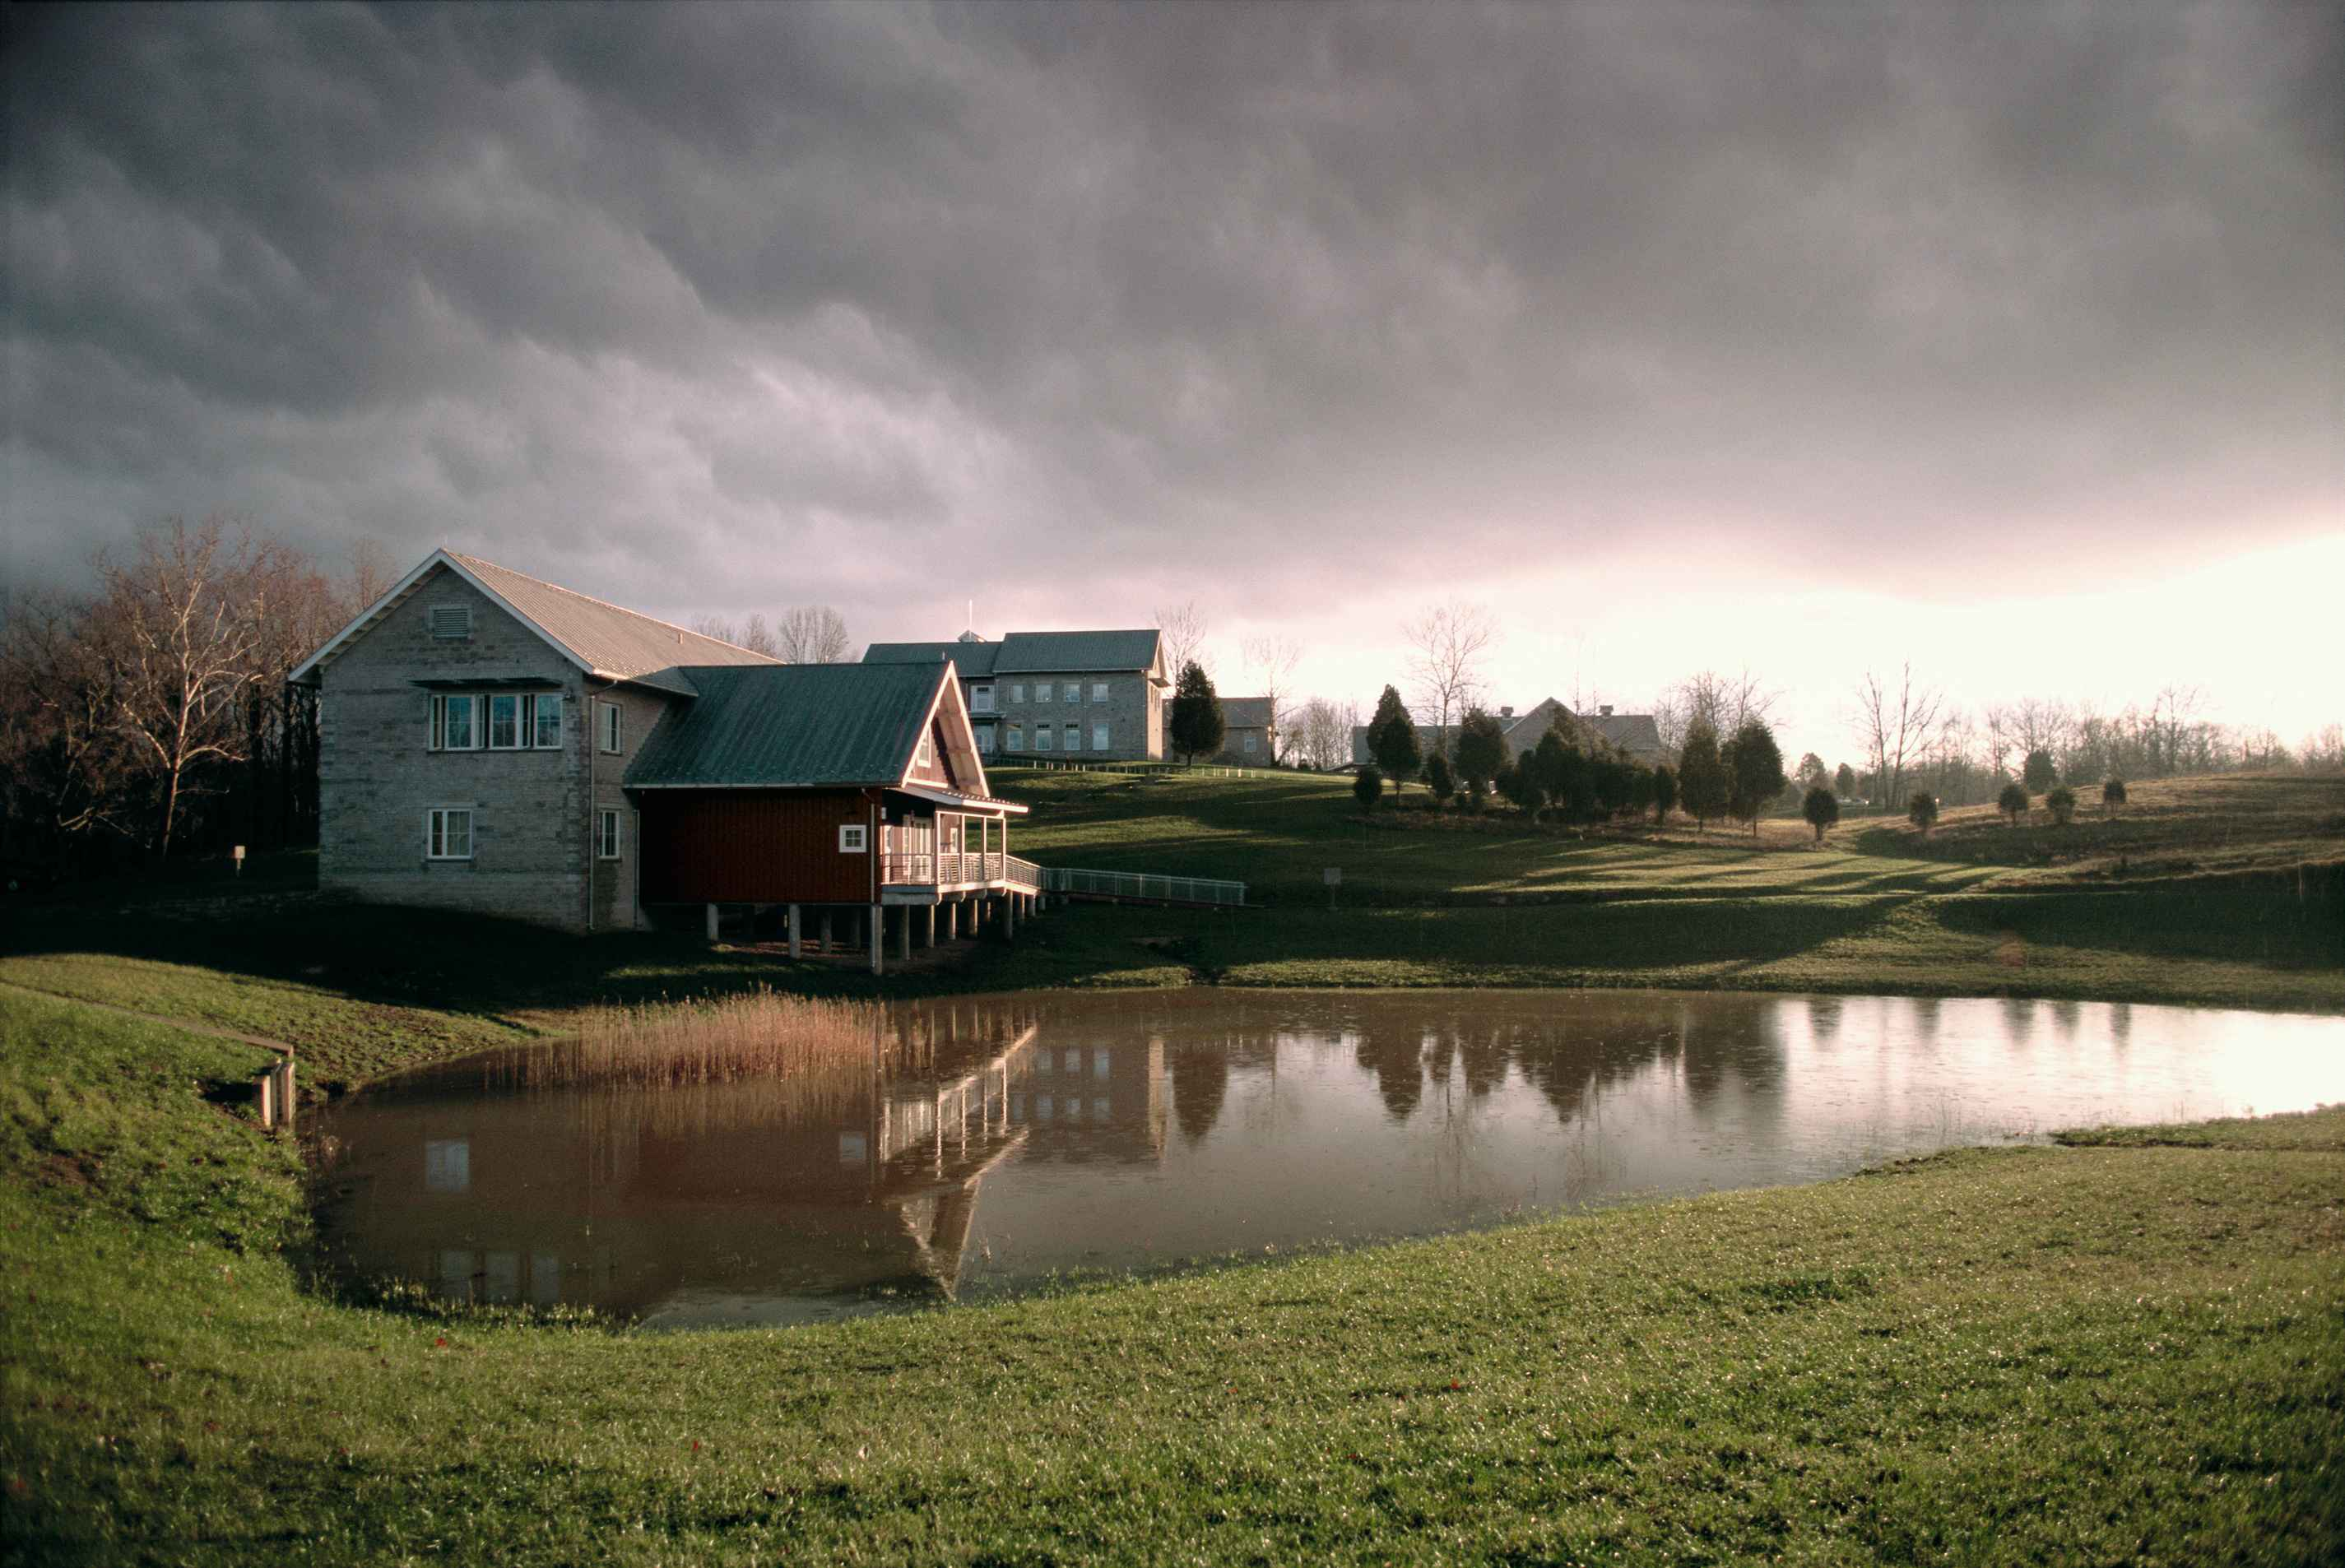 File Building And Pond With Line Of Stormy Clouds Above